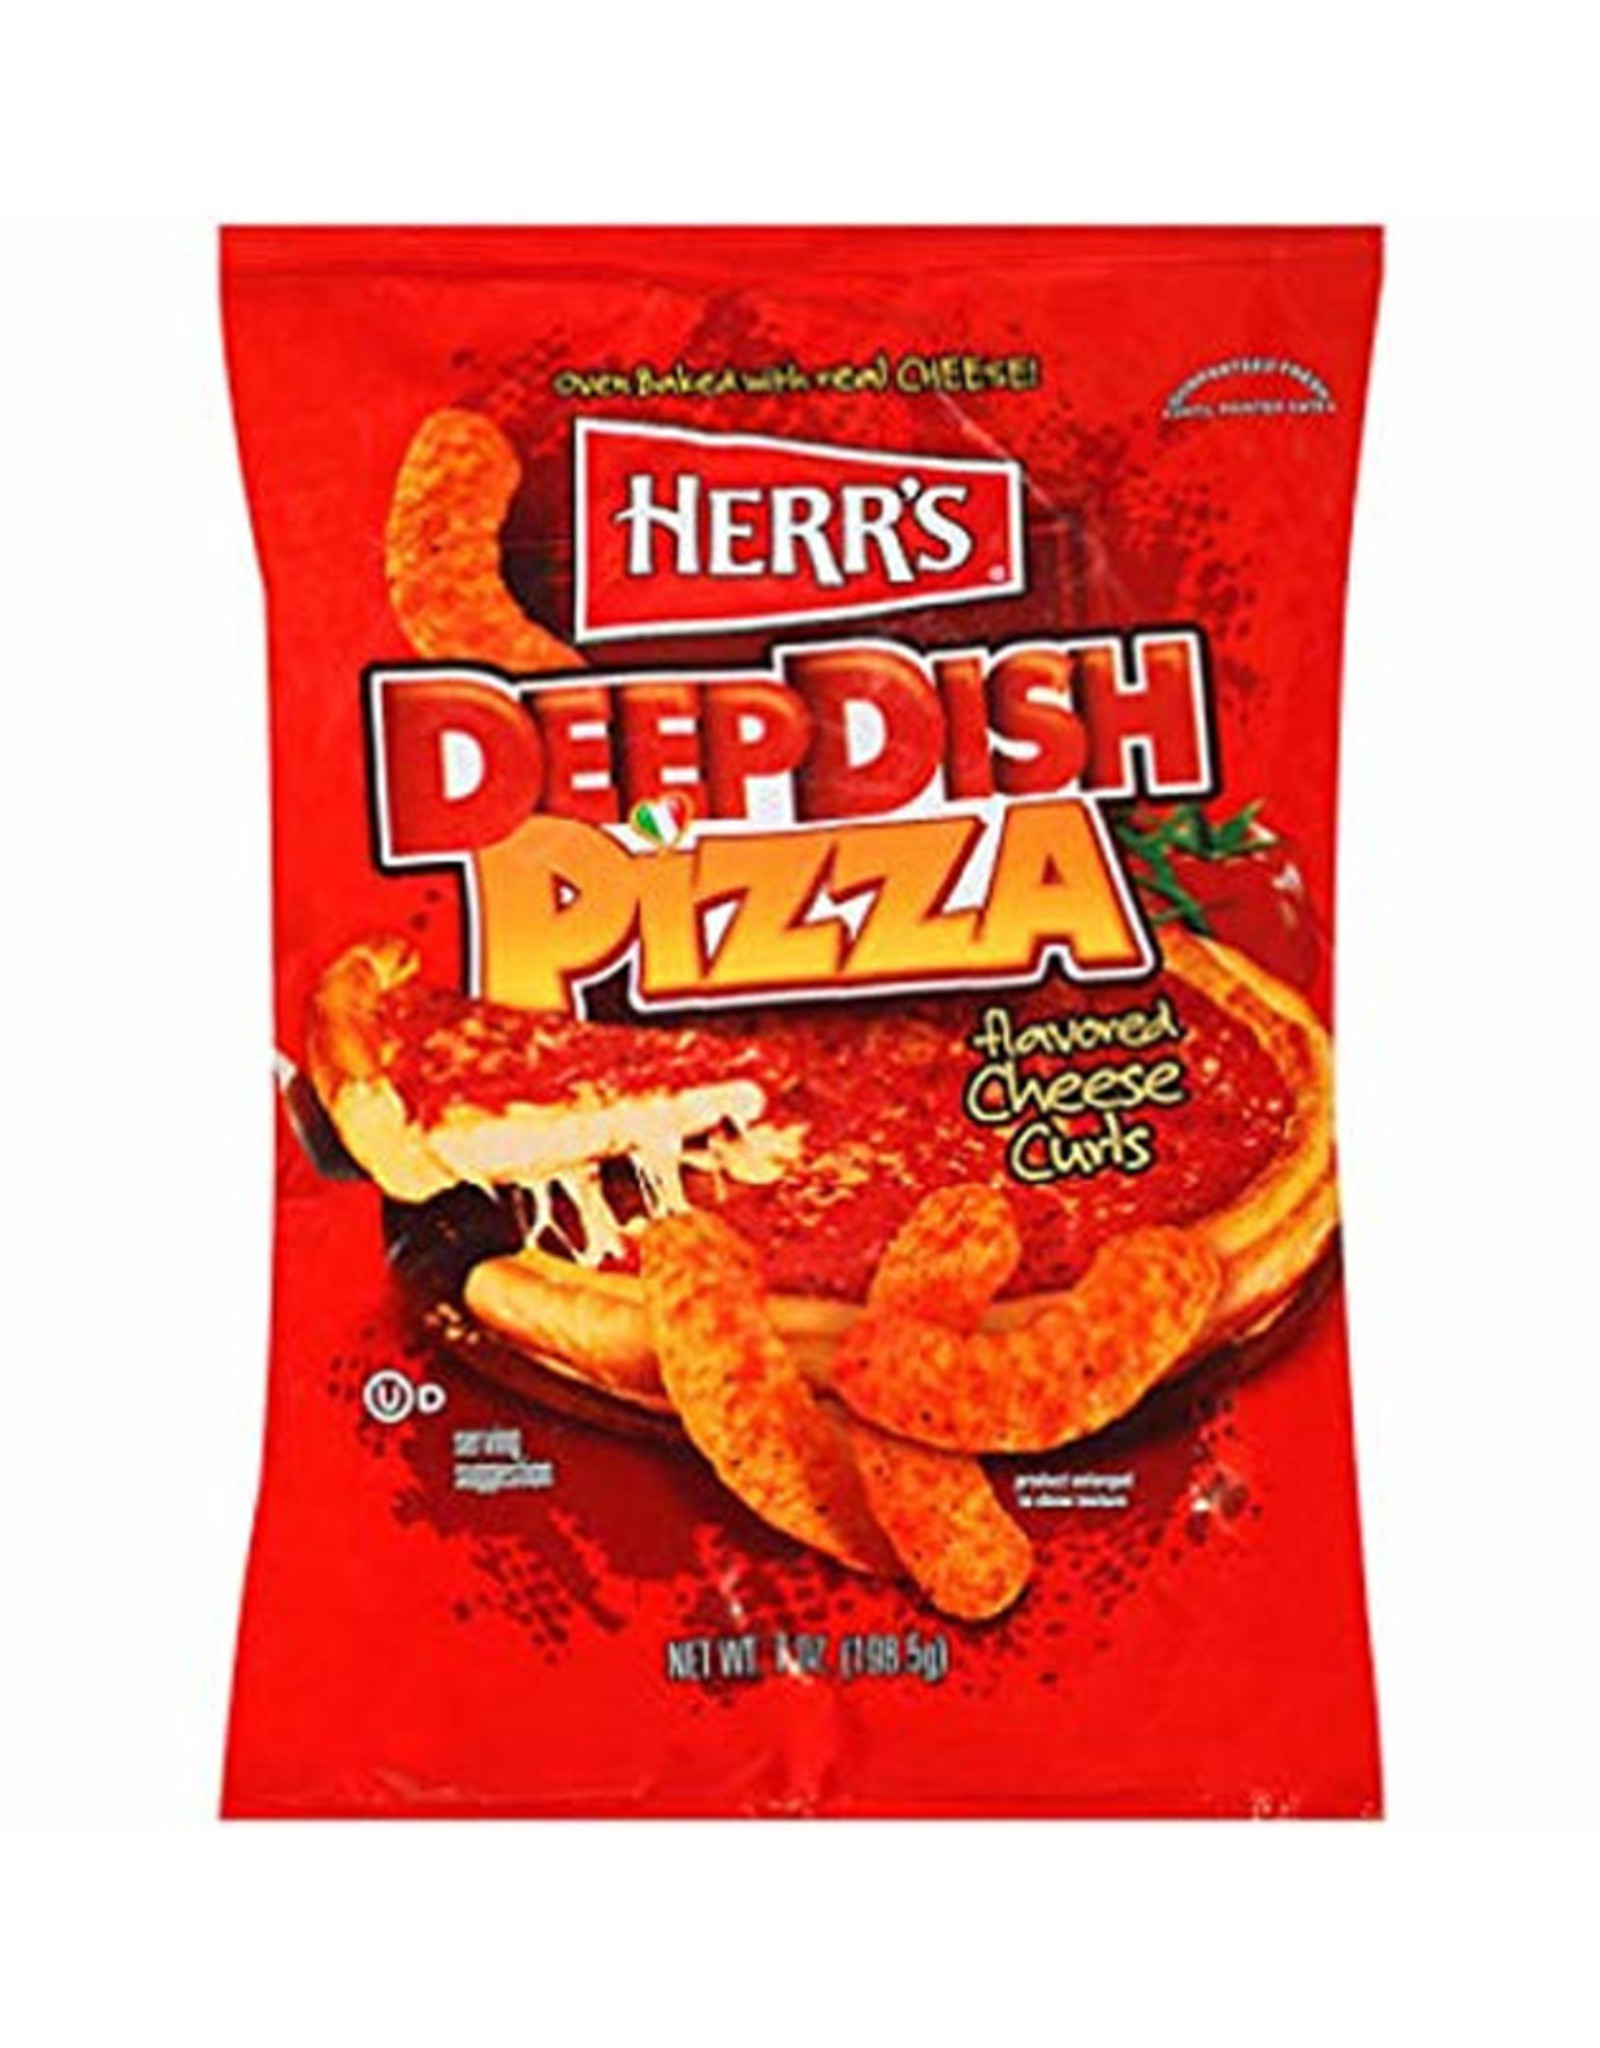 Herr's Deep Dish Pizza flavored Cheese Curls - 198g